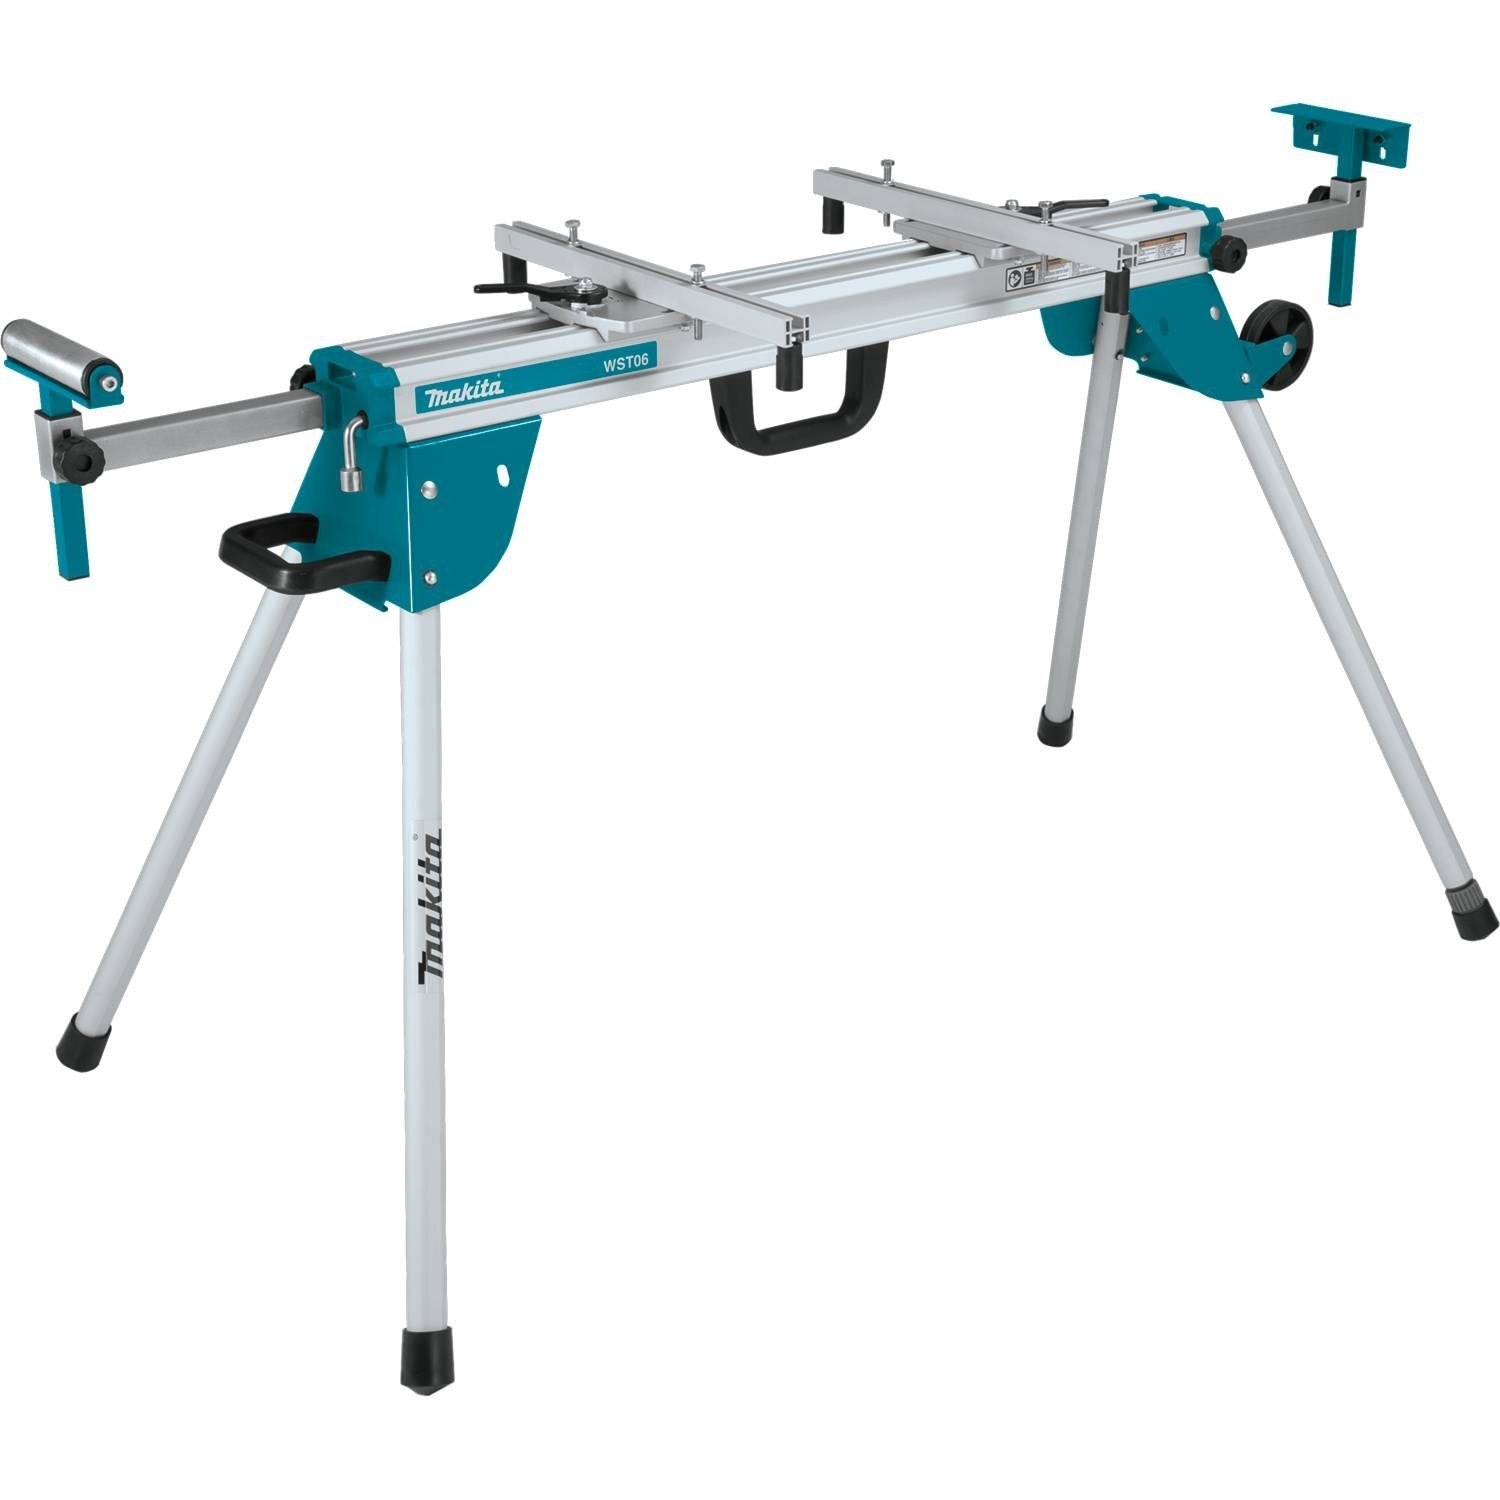 Makita WST06 Compact Folding Miter Saw Stand by Makita